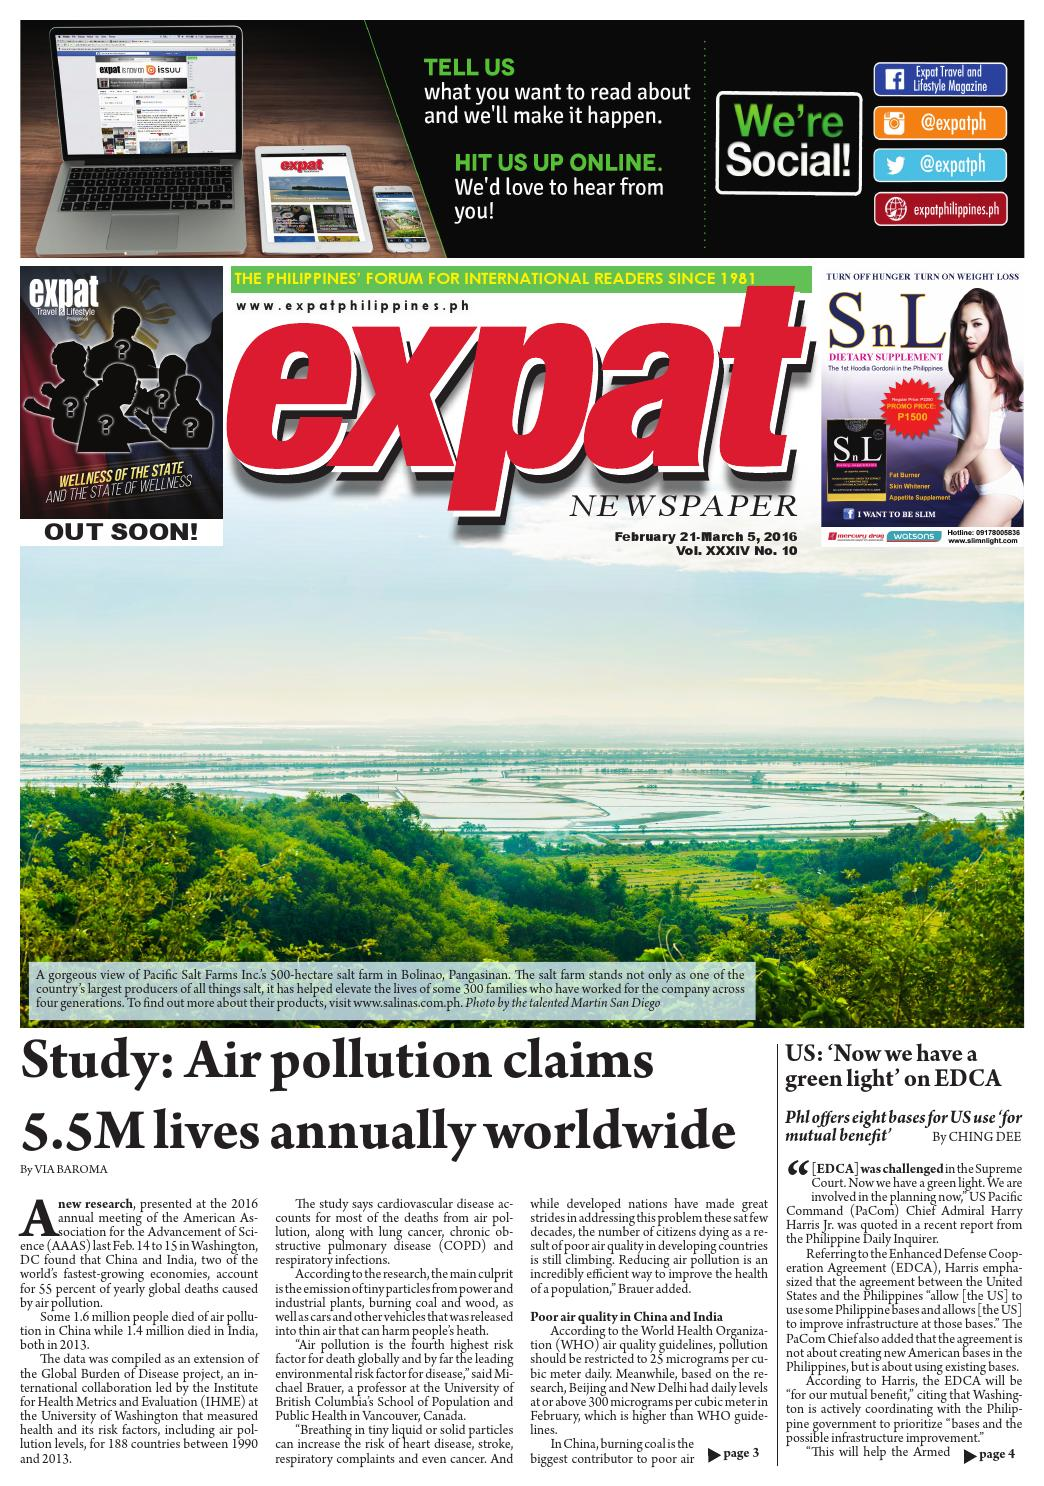 EXPAT NEWSPAPER 0221 - 0305 by Expat Communications - issuu